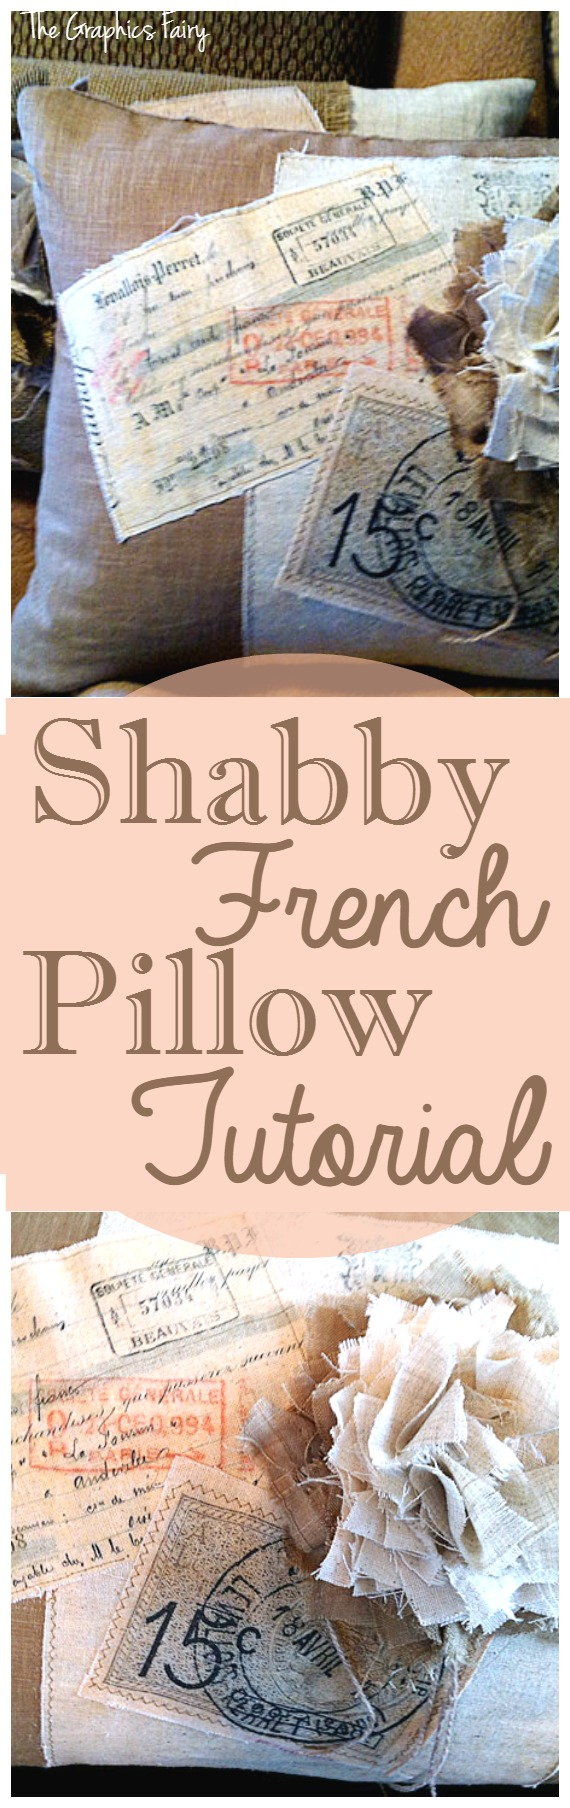 Shabby French Pillow Tutorial - The Graphics Fairy